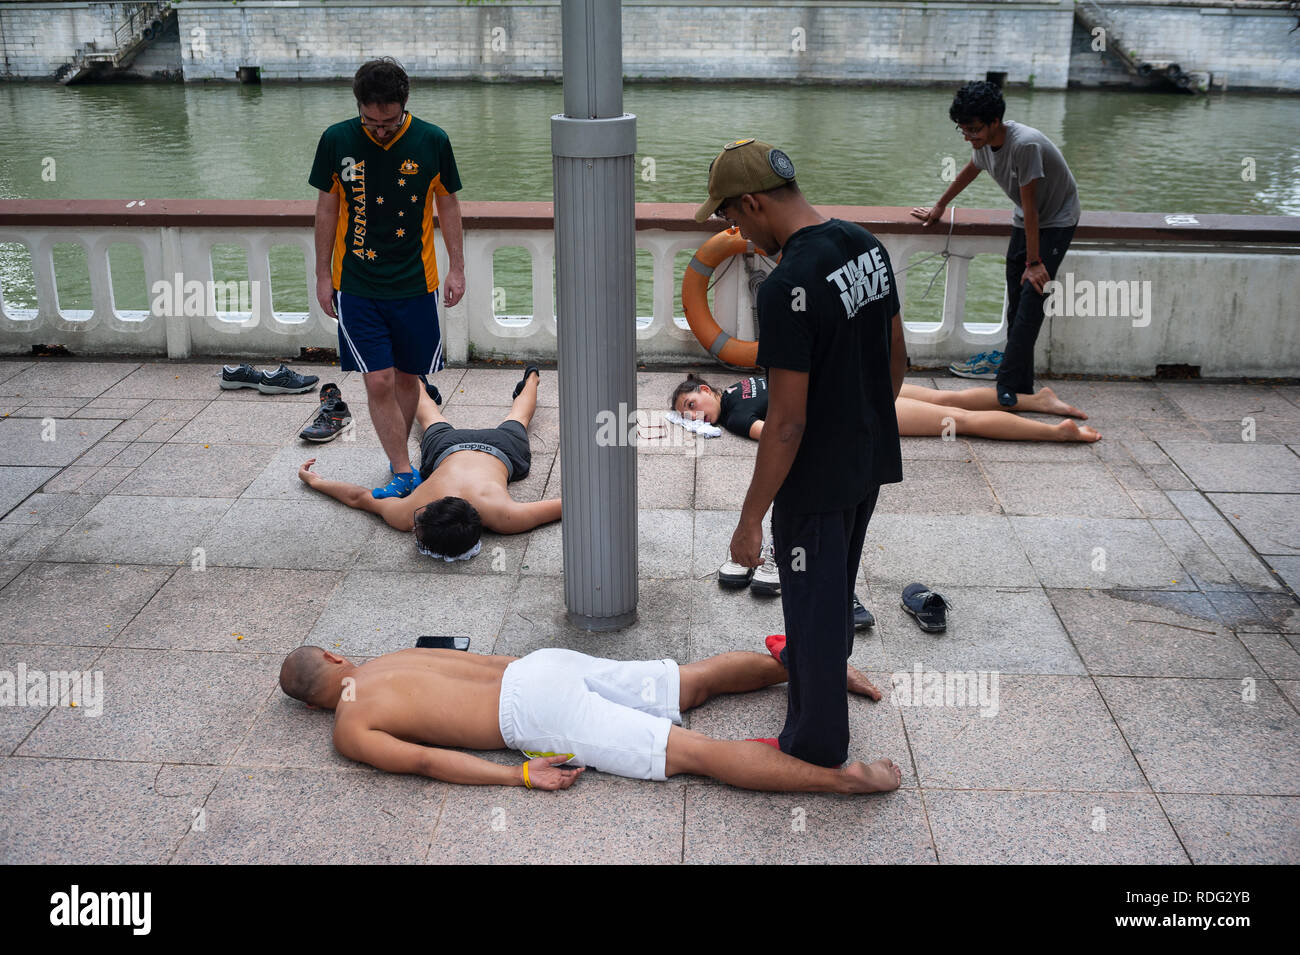 08.04.2018, Singapore, Republic of Singapore, Asia - Parkour runners are massaging one another after a parkour run at the riverside in downtown. - Stock Image